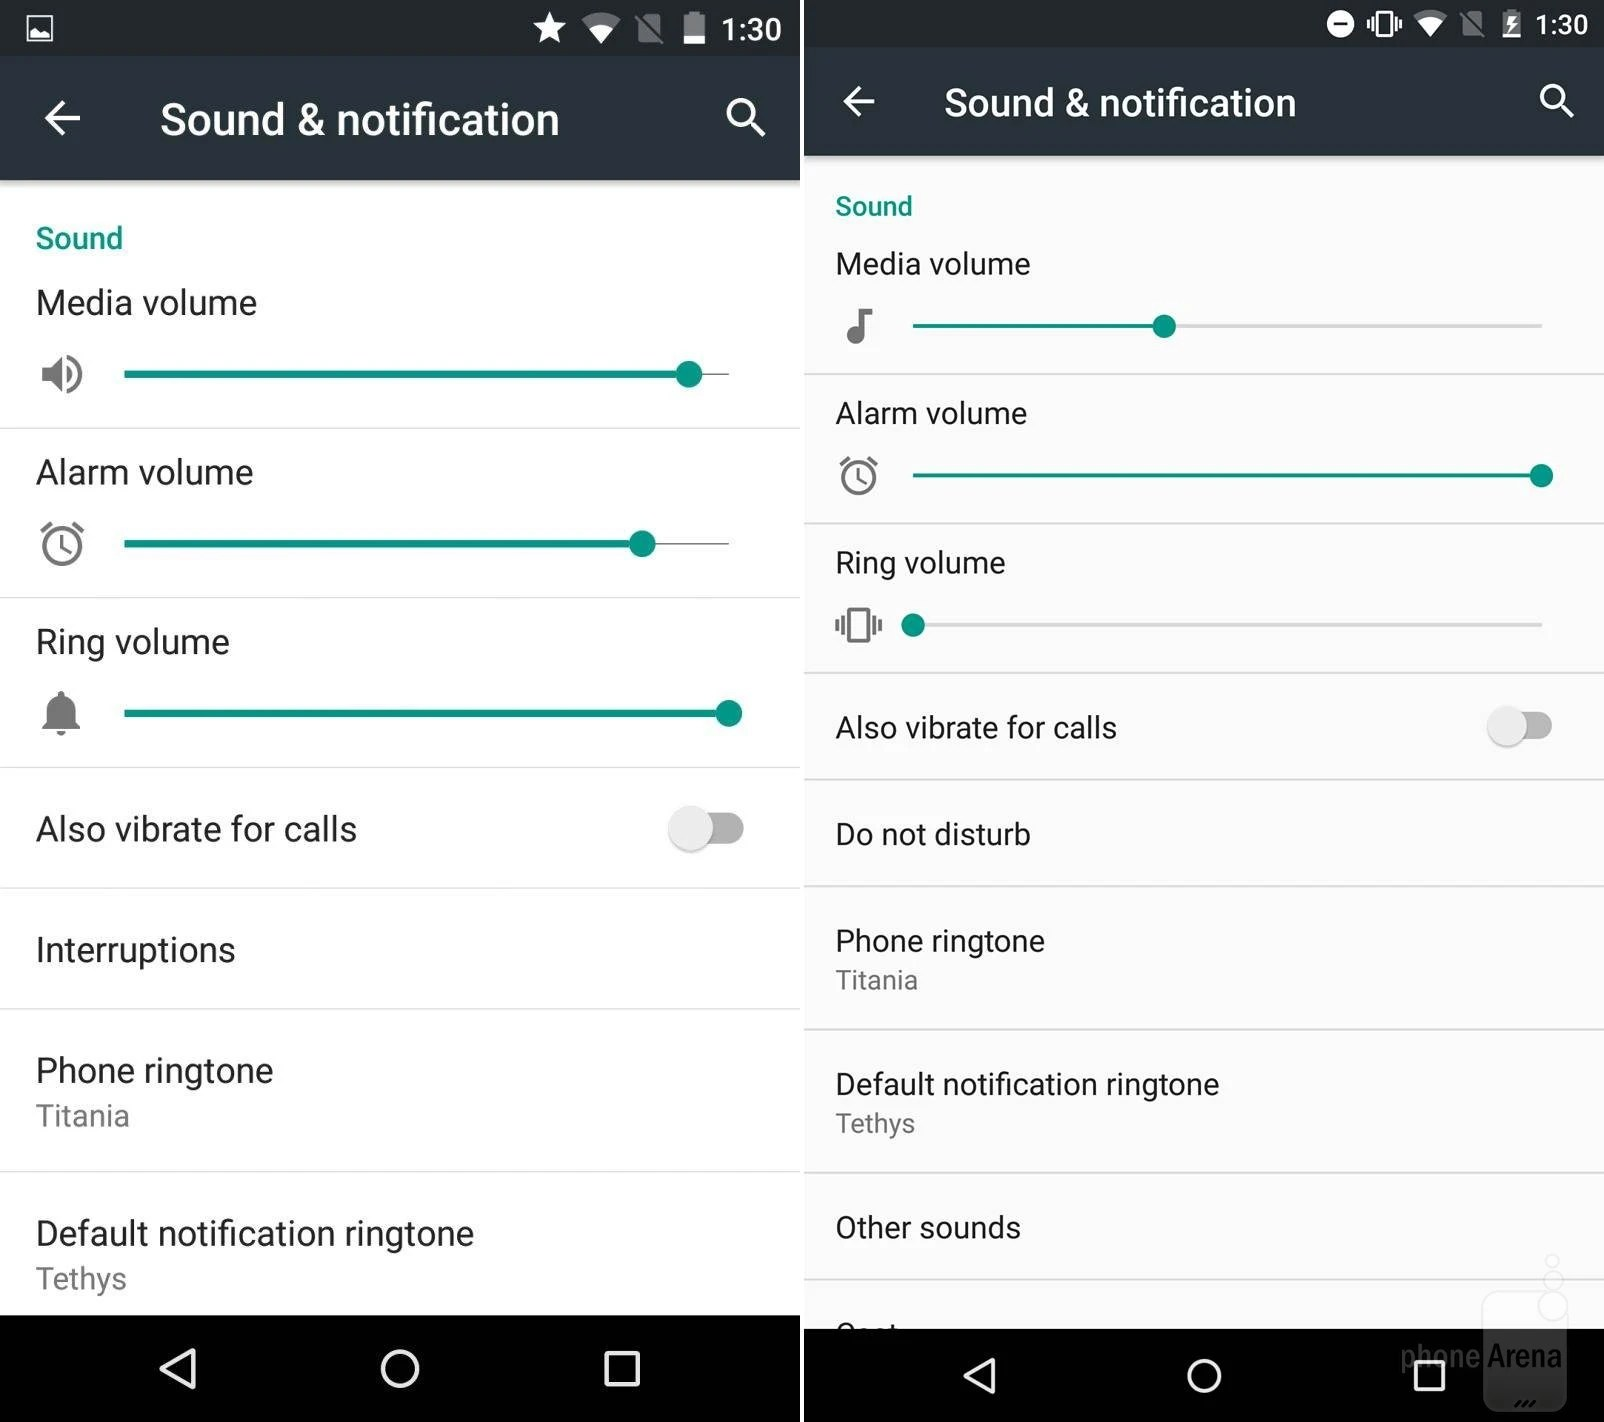 Sounds & notifications